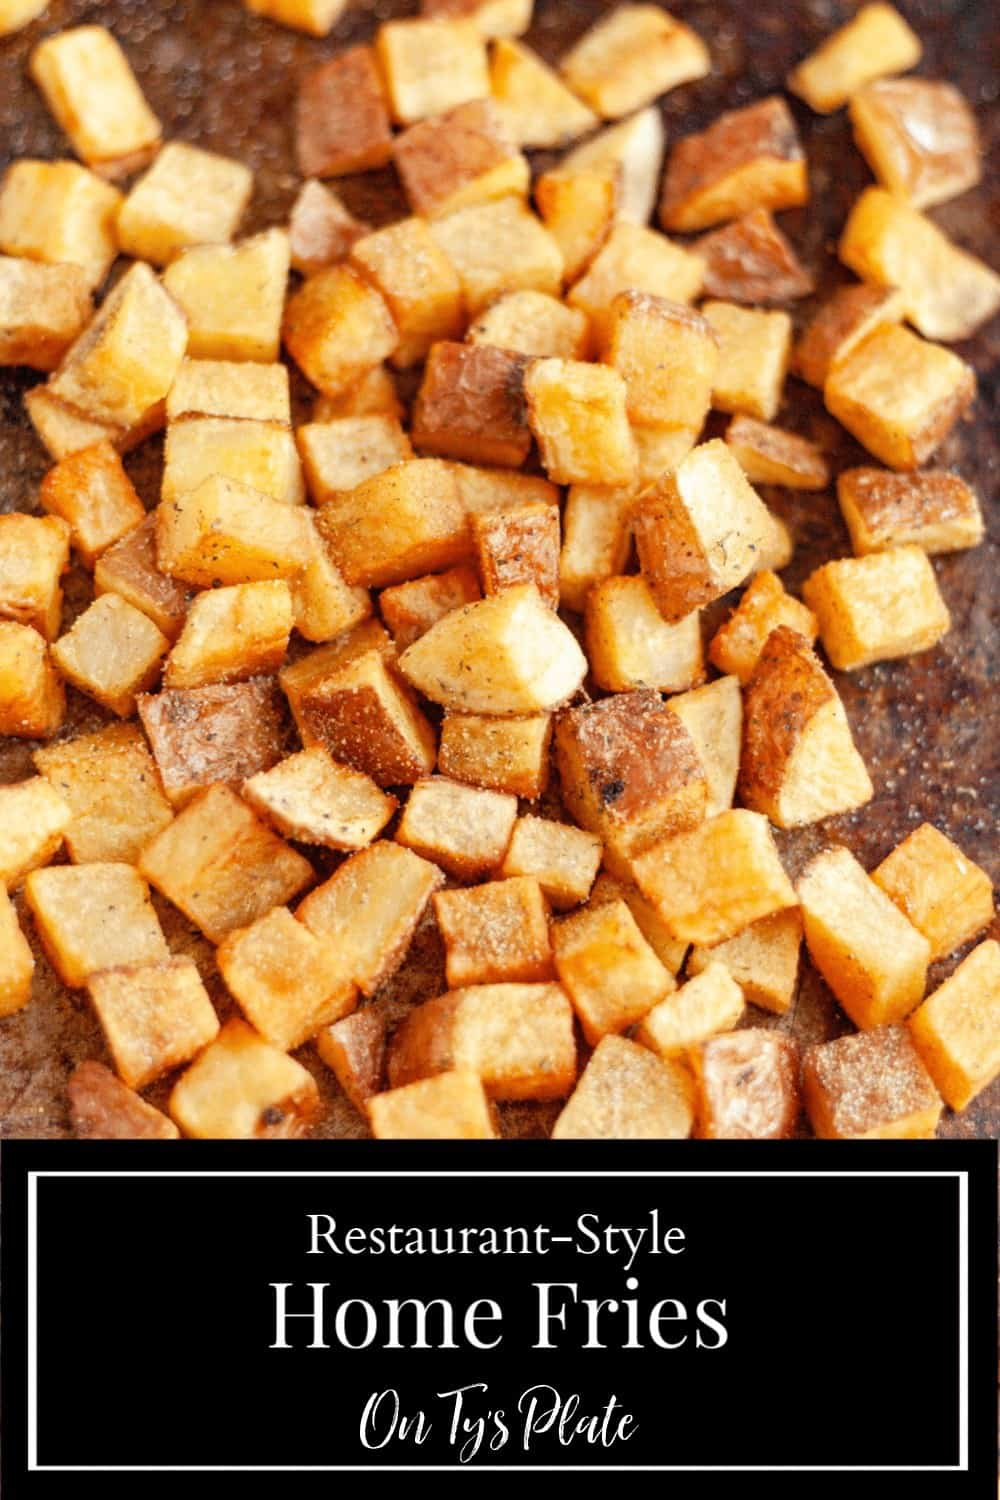 Restaurant-Style Home Fries